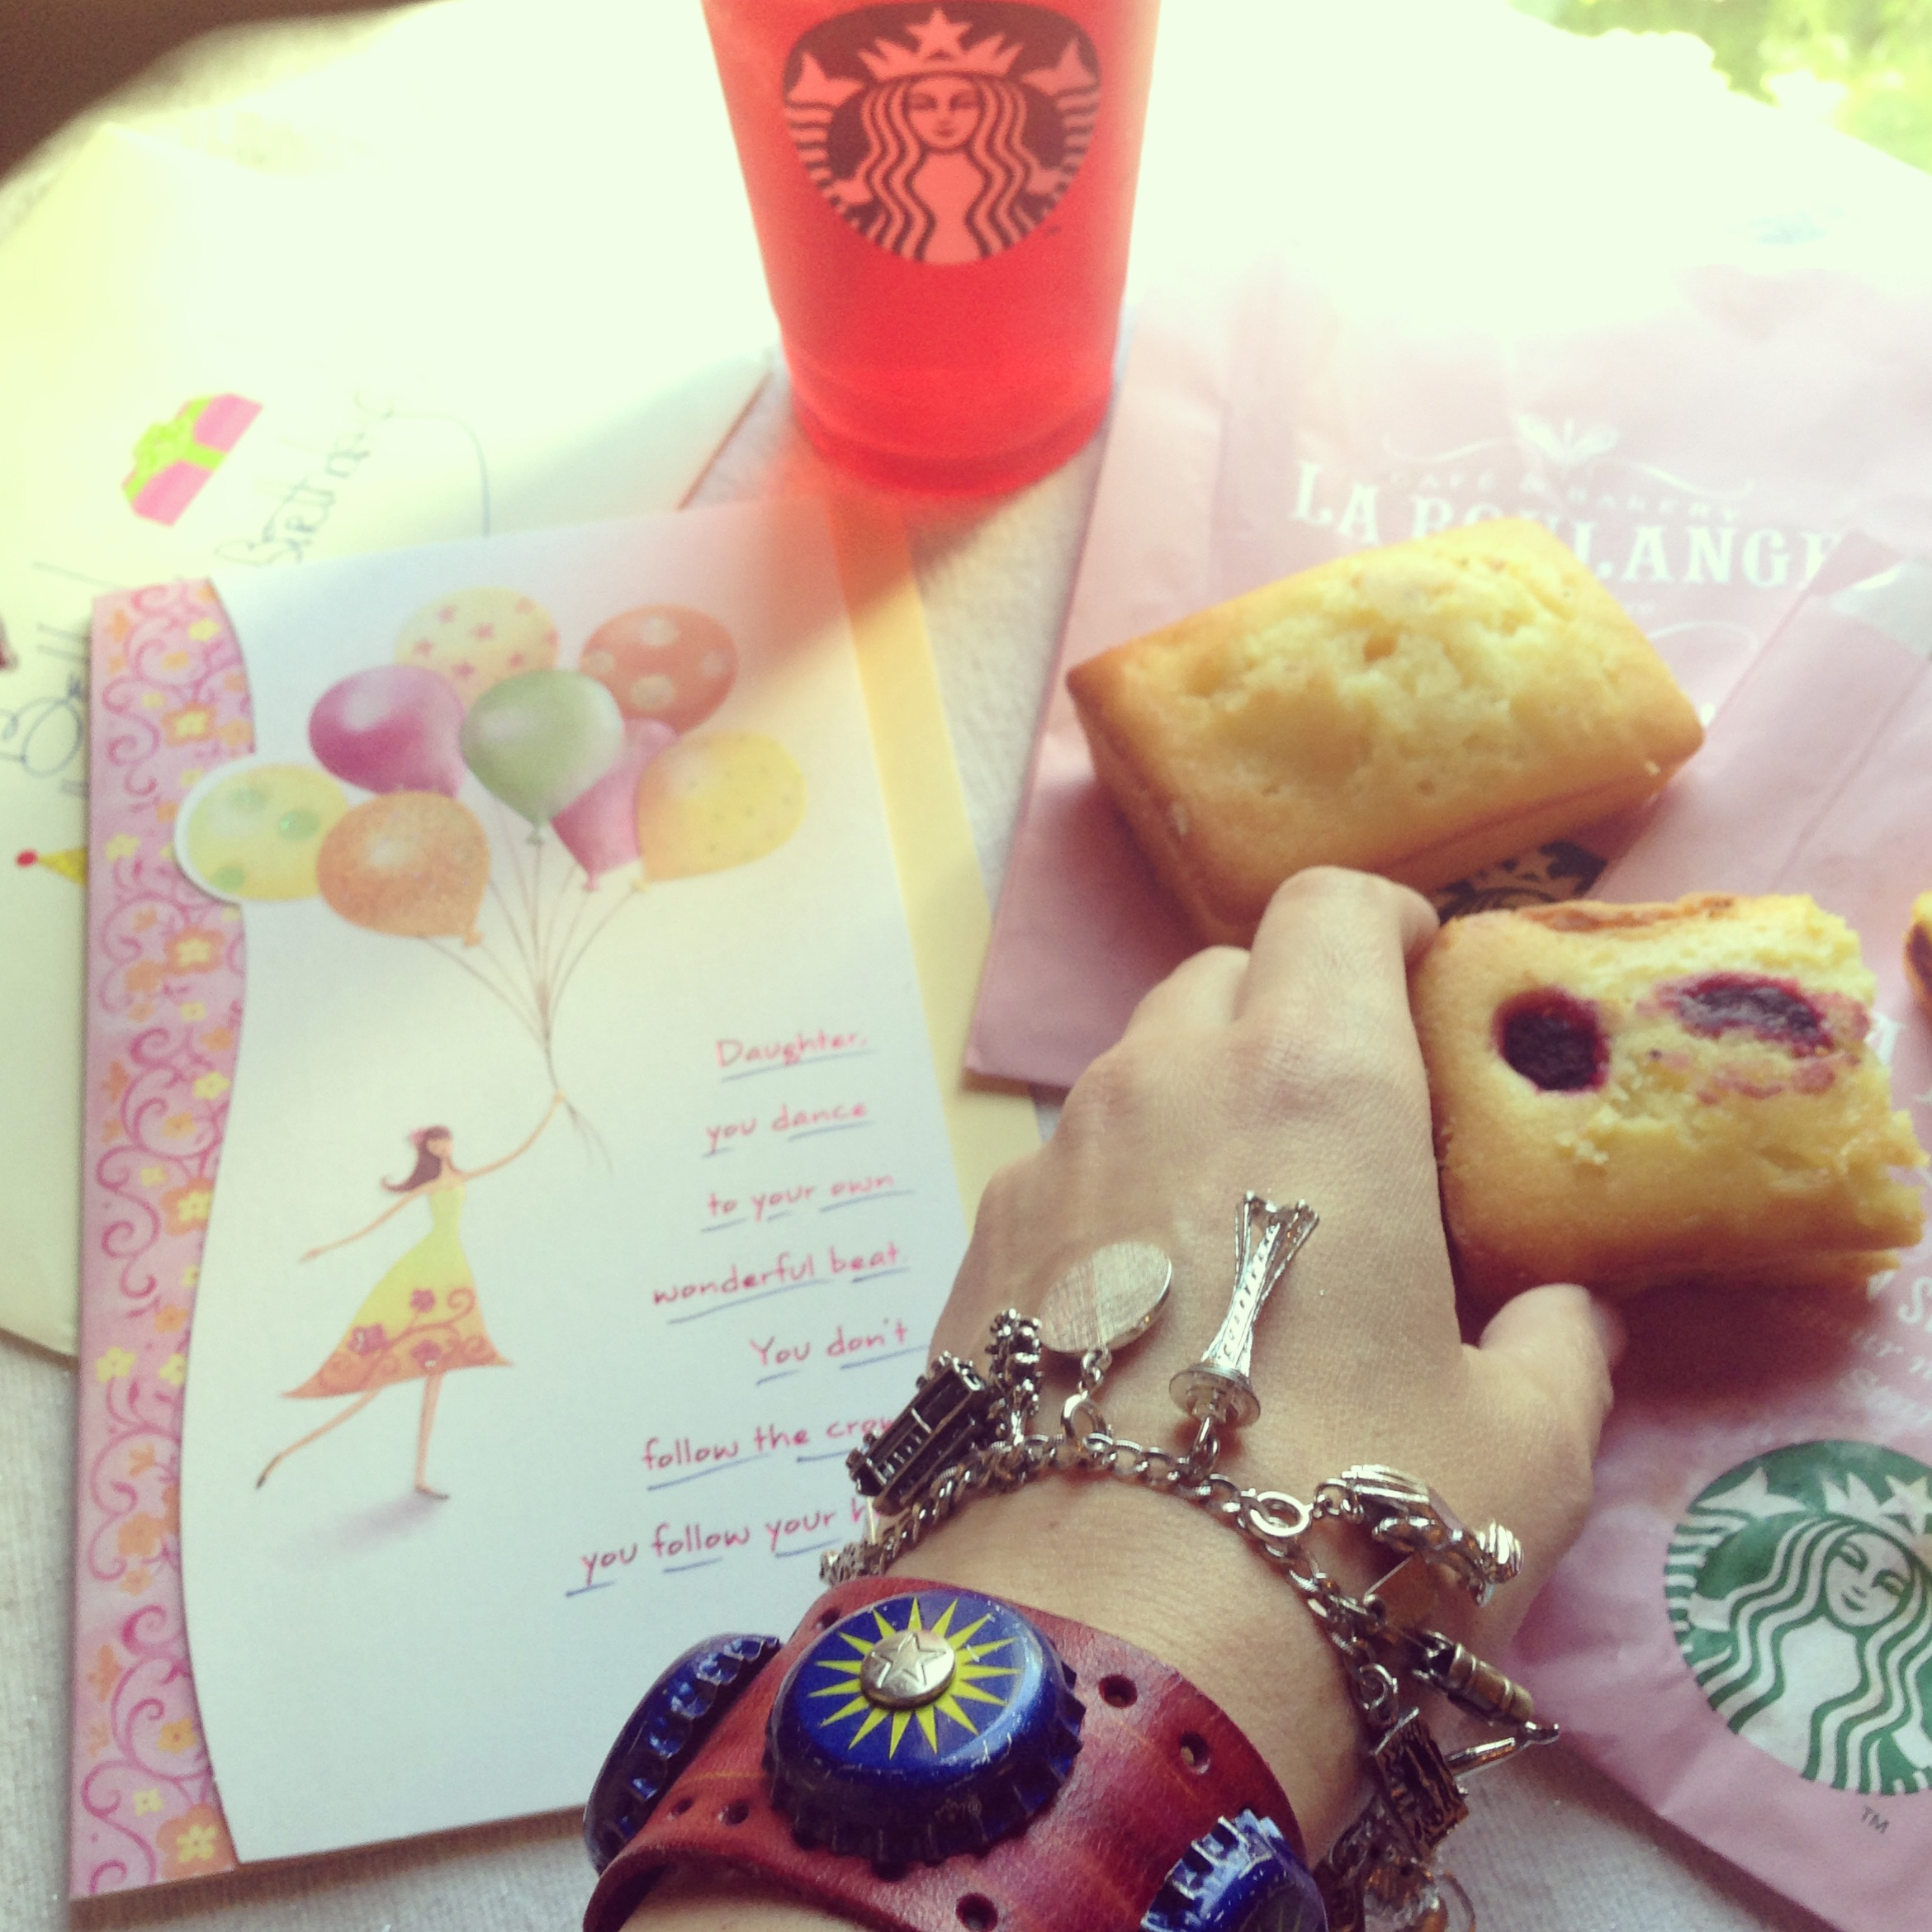 Birthday gifts and Starbucks